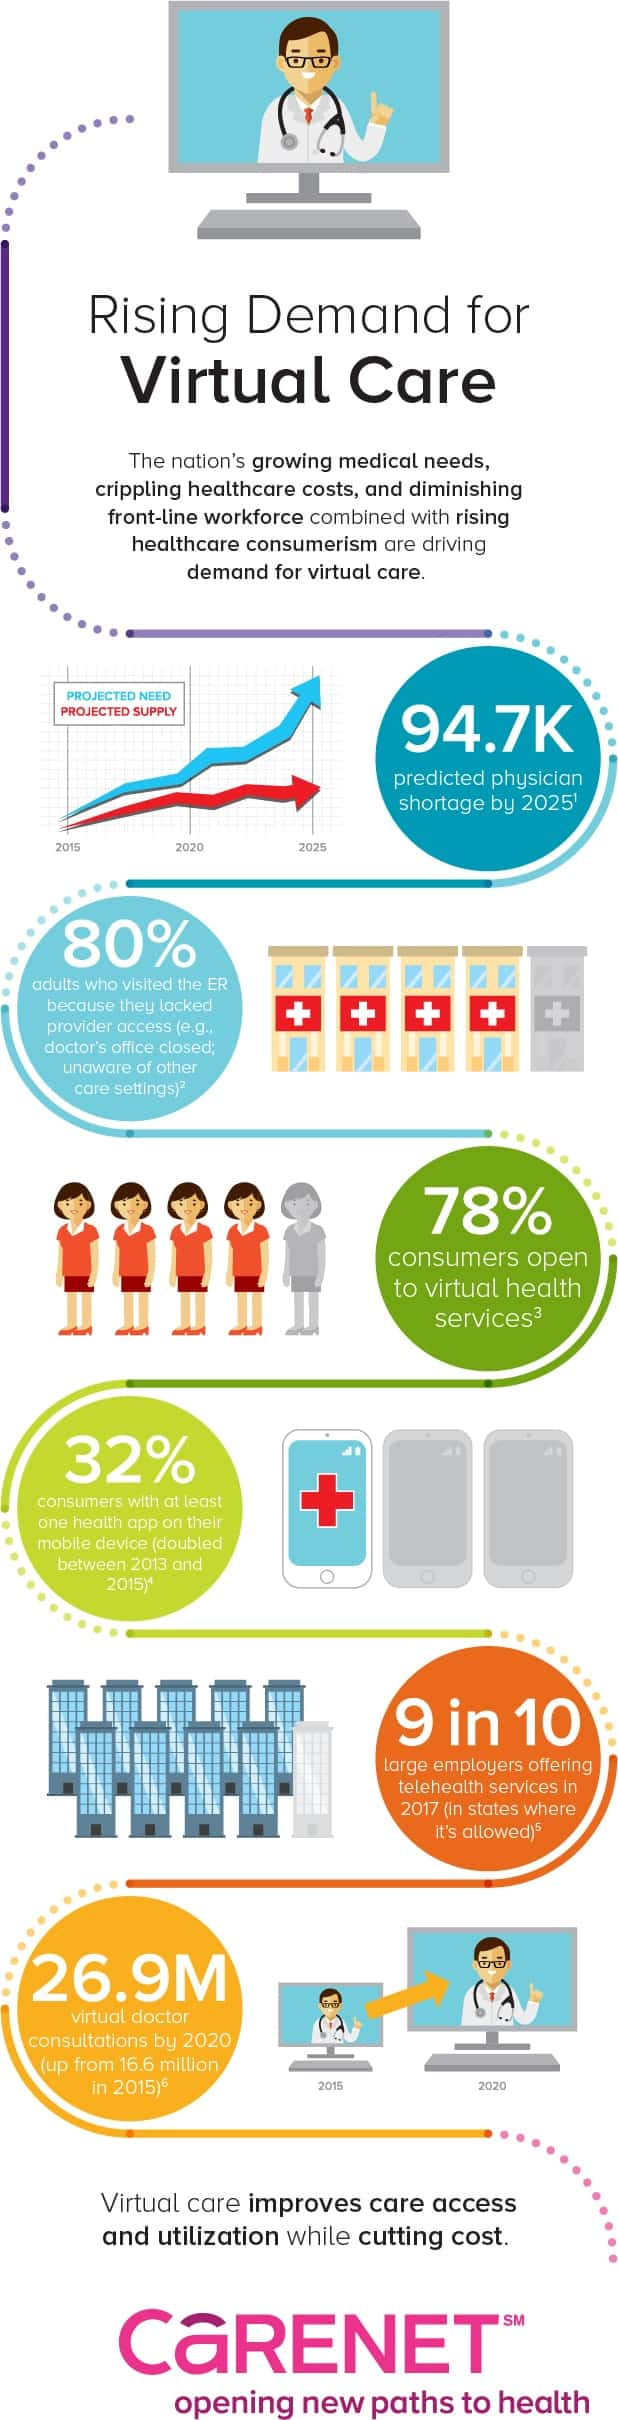 Virtual Care Facts